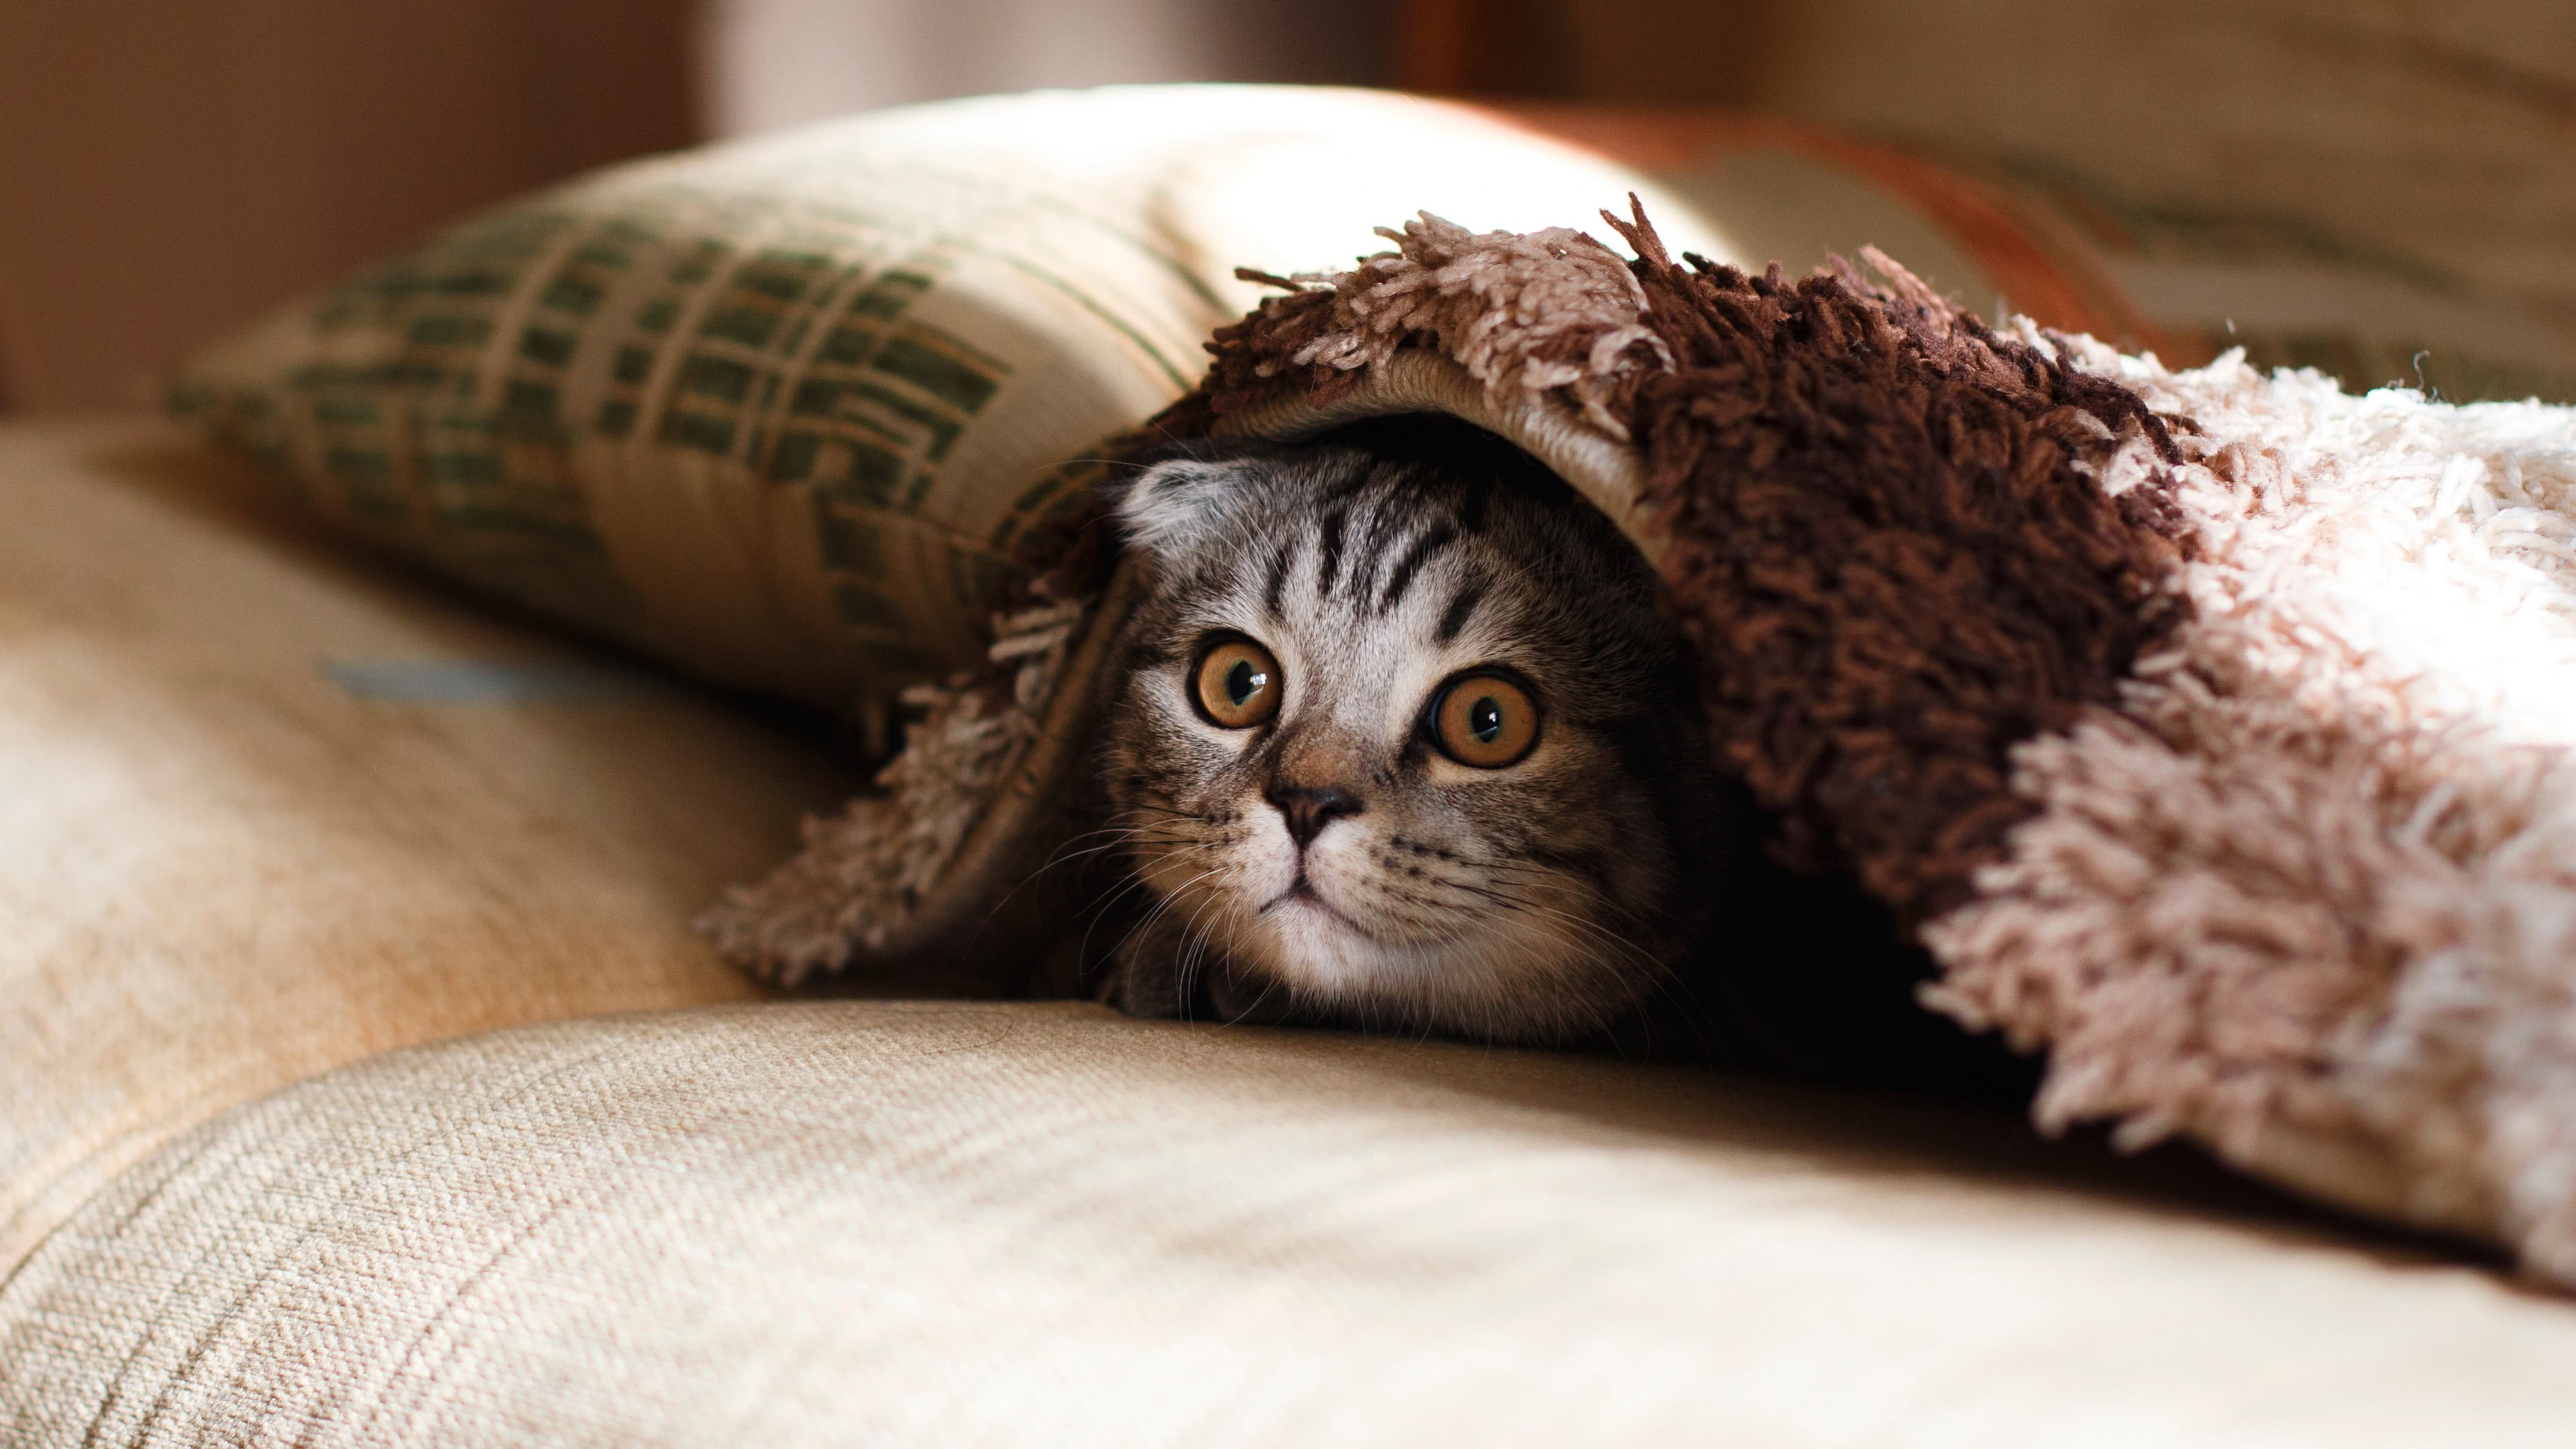 cat under blanket uhd 4k wallpaper